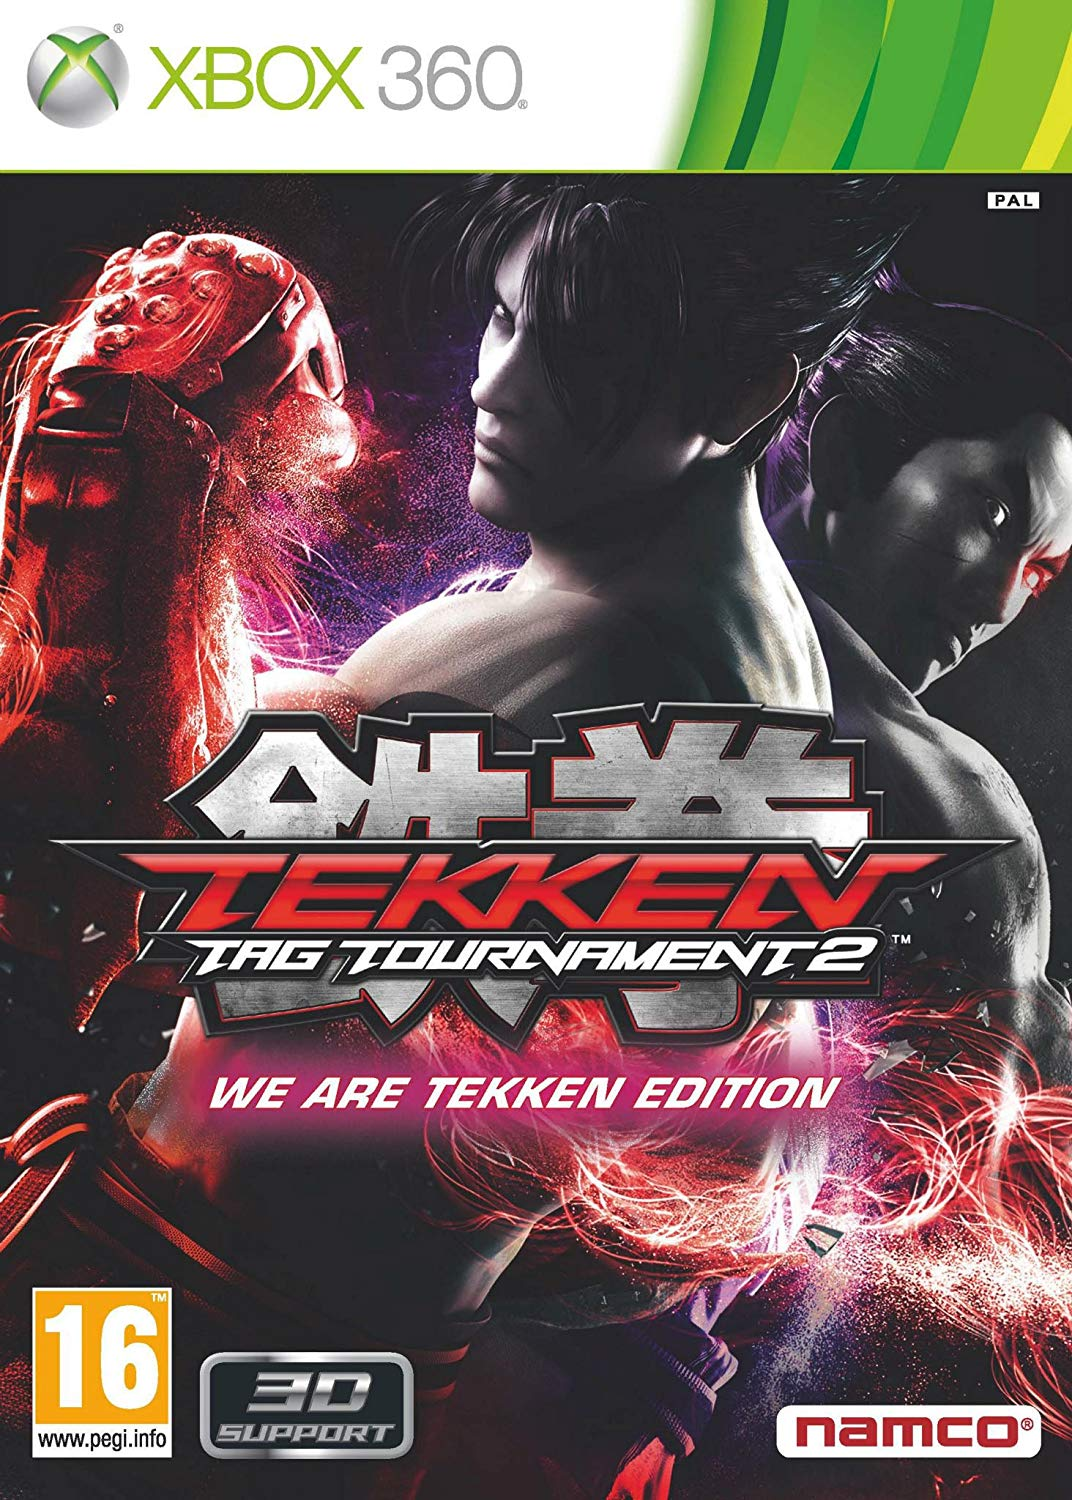 Tekken Tag Tournament 2: We are Tekken Edition